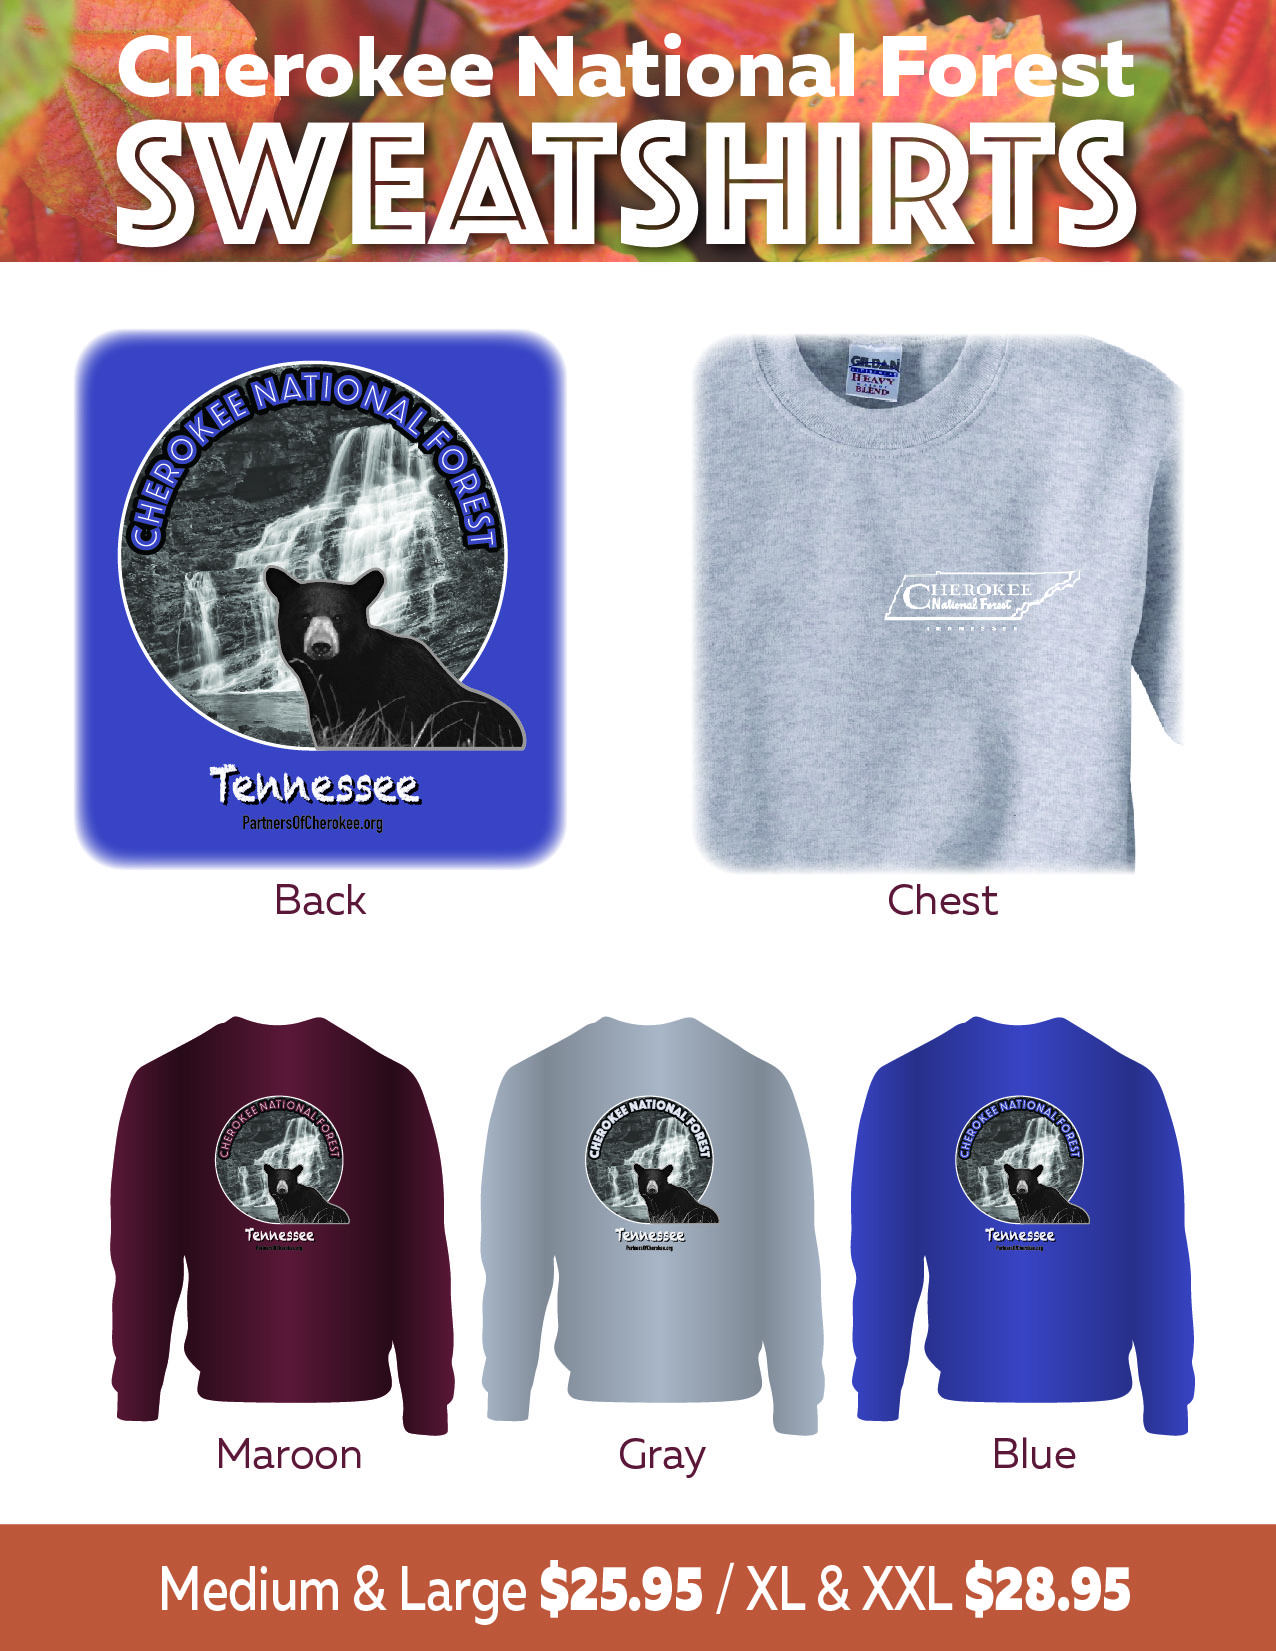 Sweatshirts celebrating the Cherokee National Forest